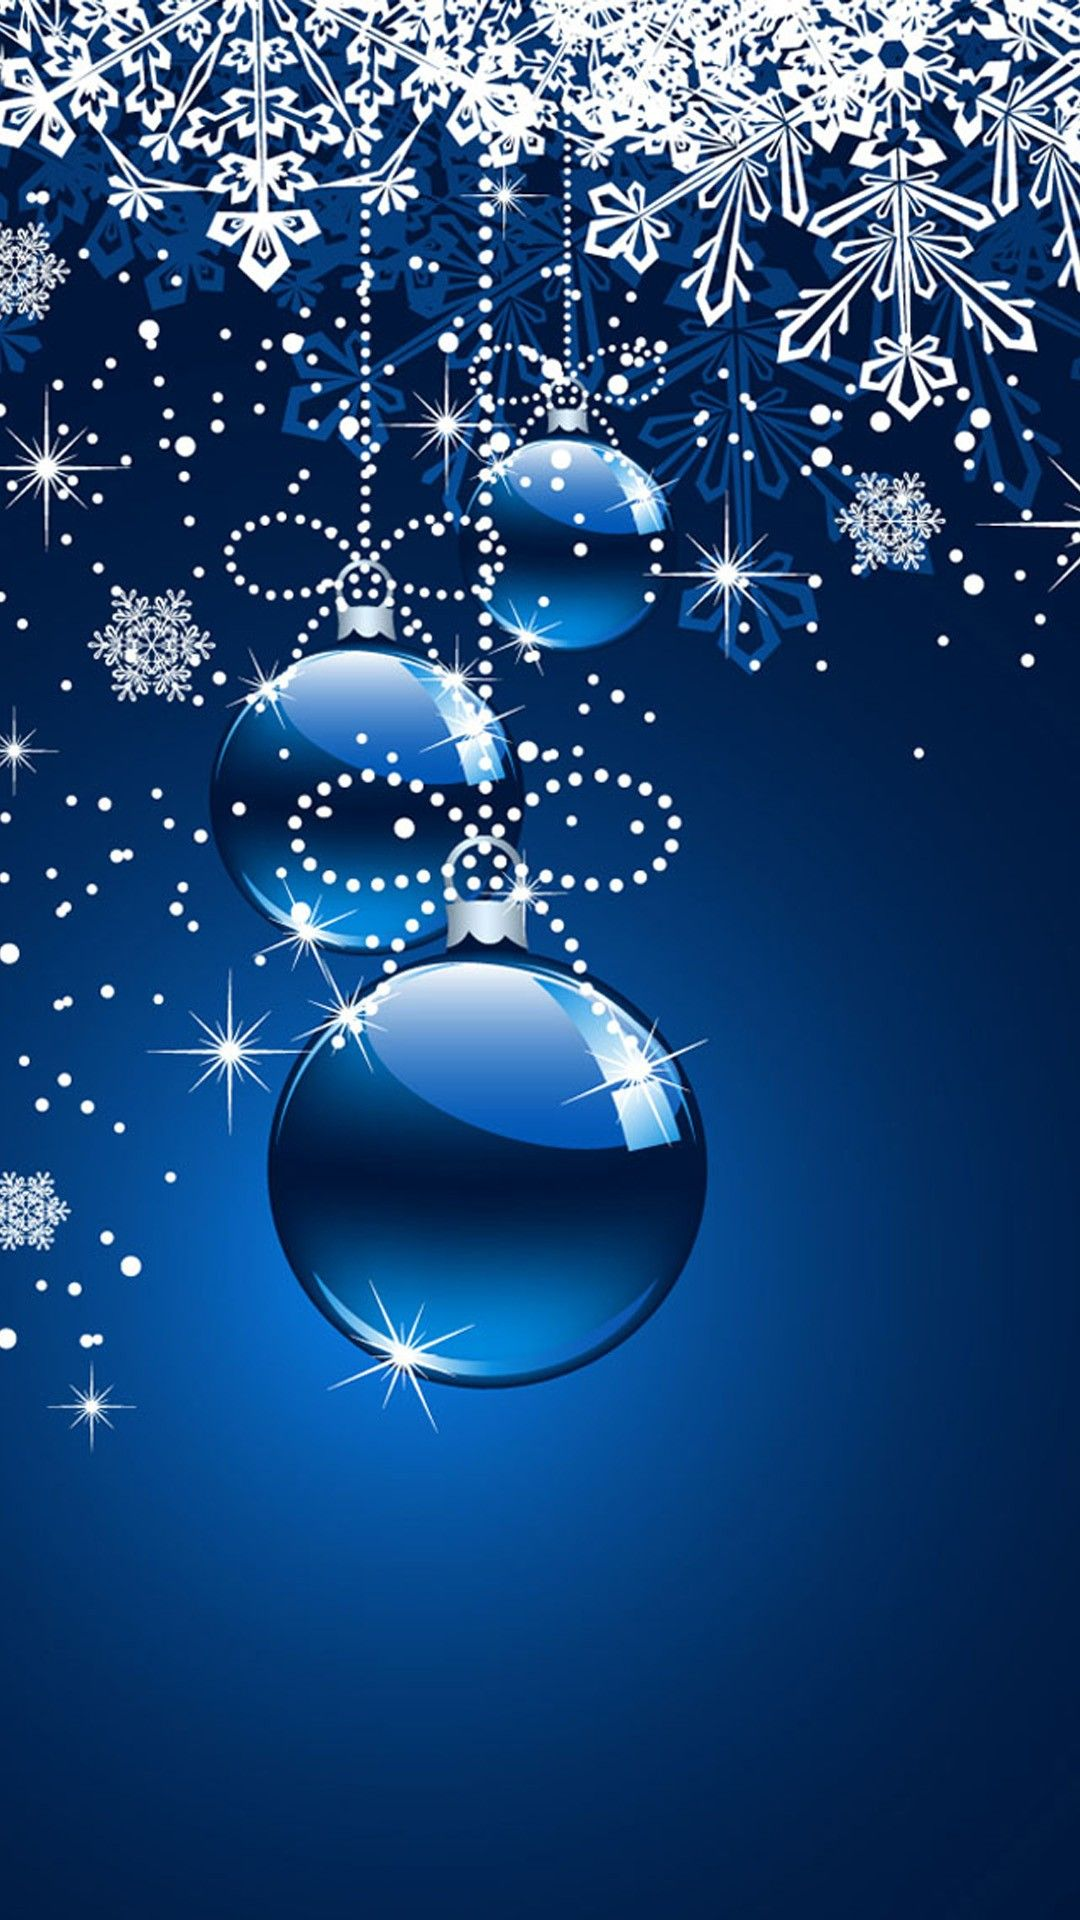 Christmas snowflake ornaments - Christmas Snowflake Iphone 6 Plus Wallpaper Balls Floating Ornaments